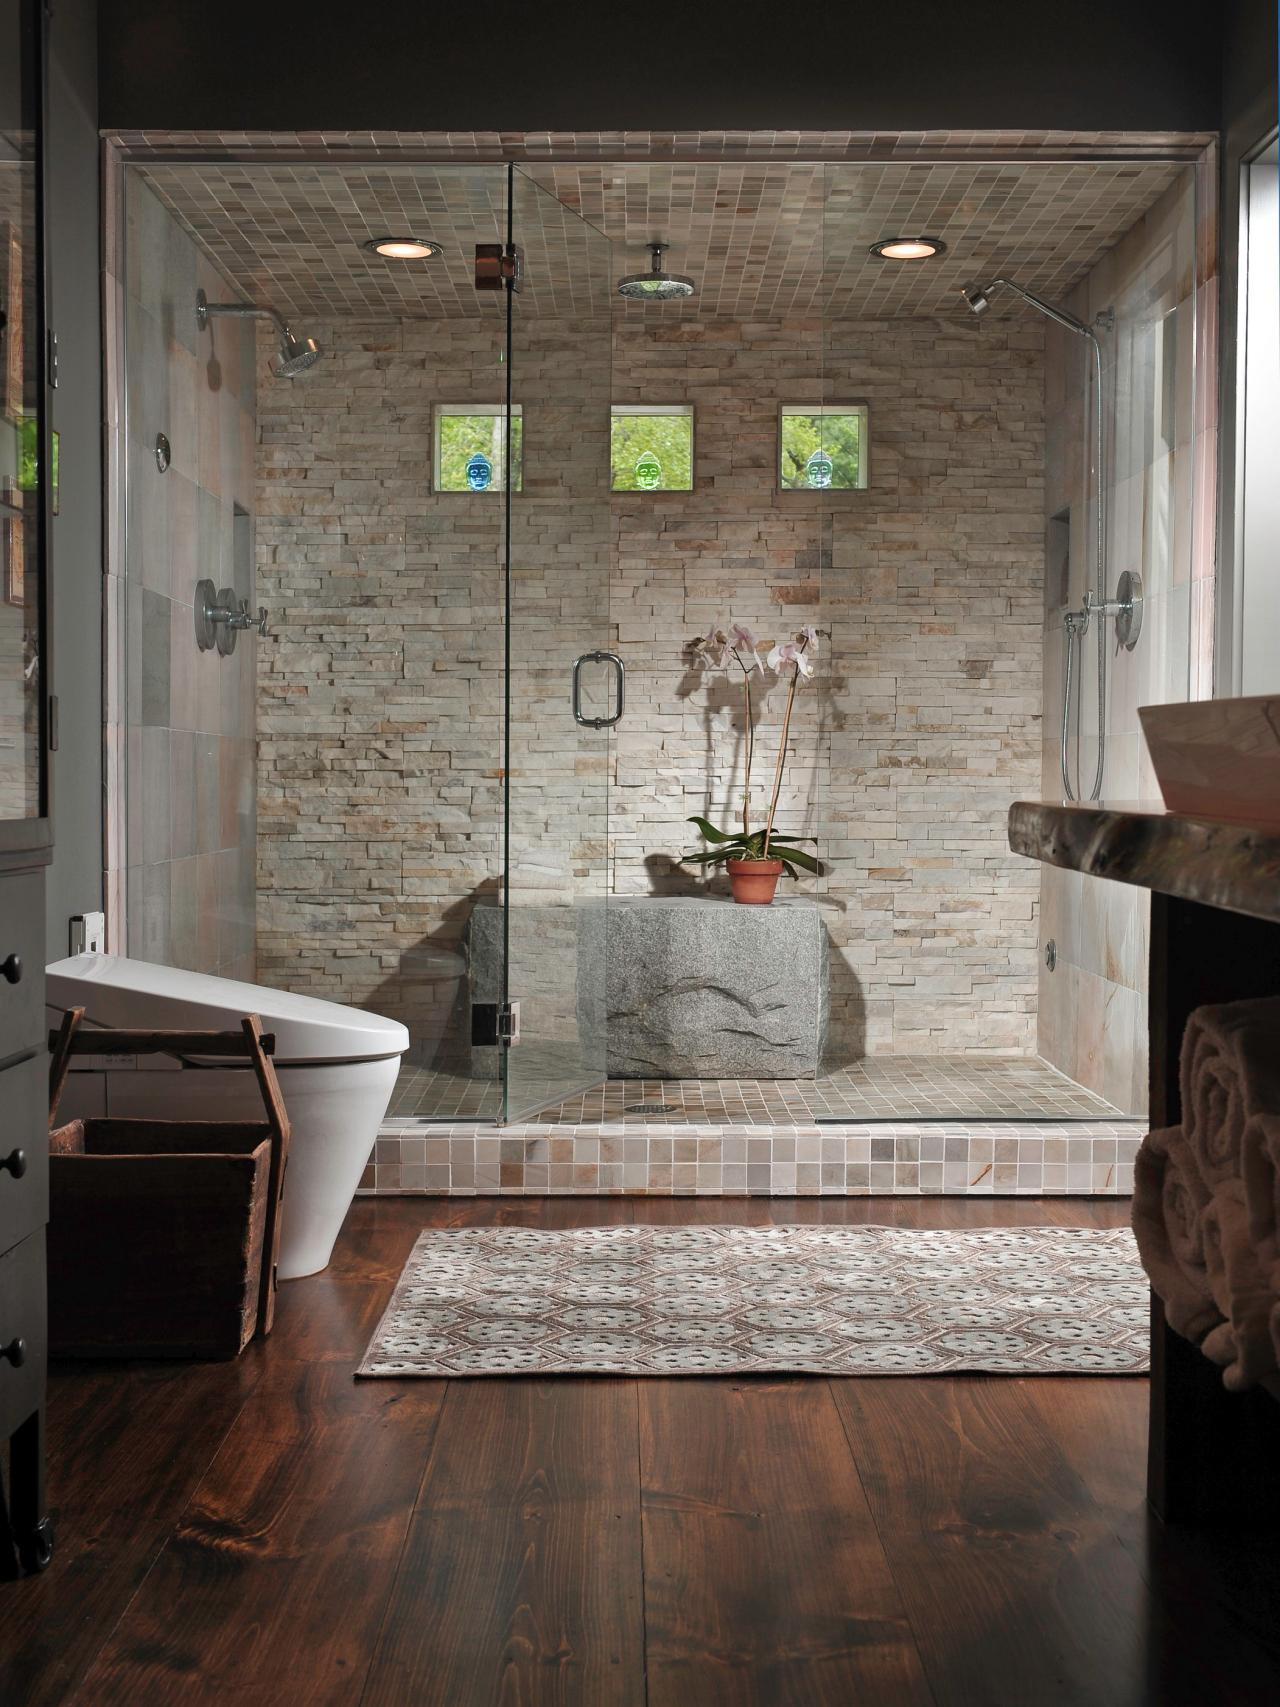 Original_Jackie-Dishner-Luxury-Showers-Susan-Fredman-Stone-Enclosure_3x4.jpg.rend.hgtvcom.1280.1707